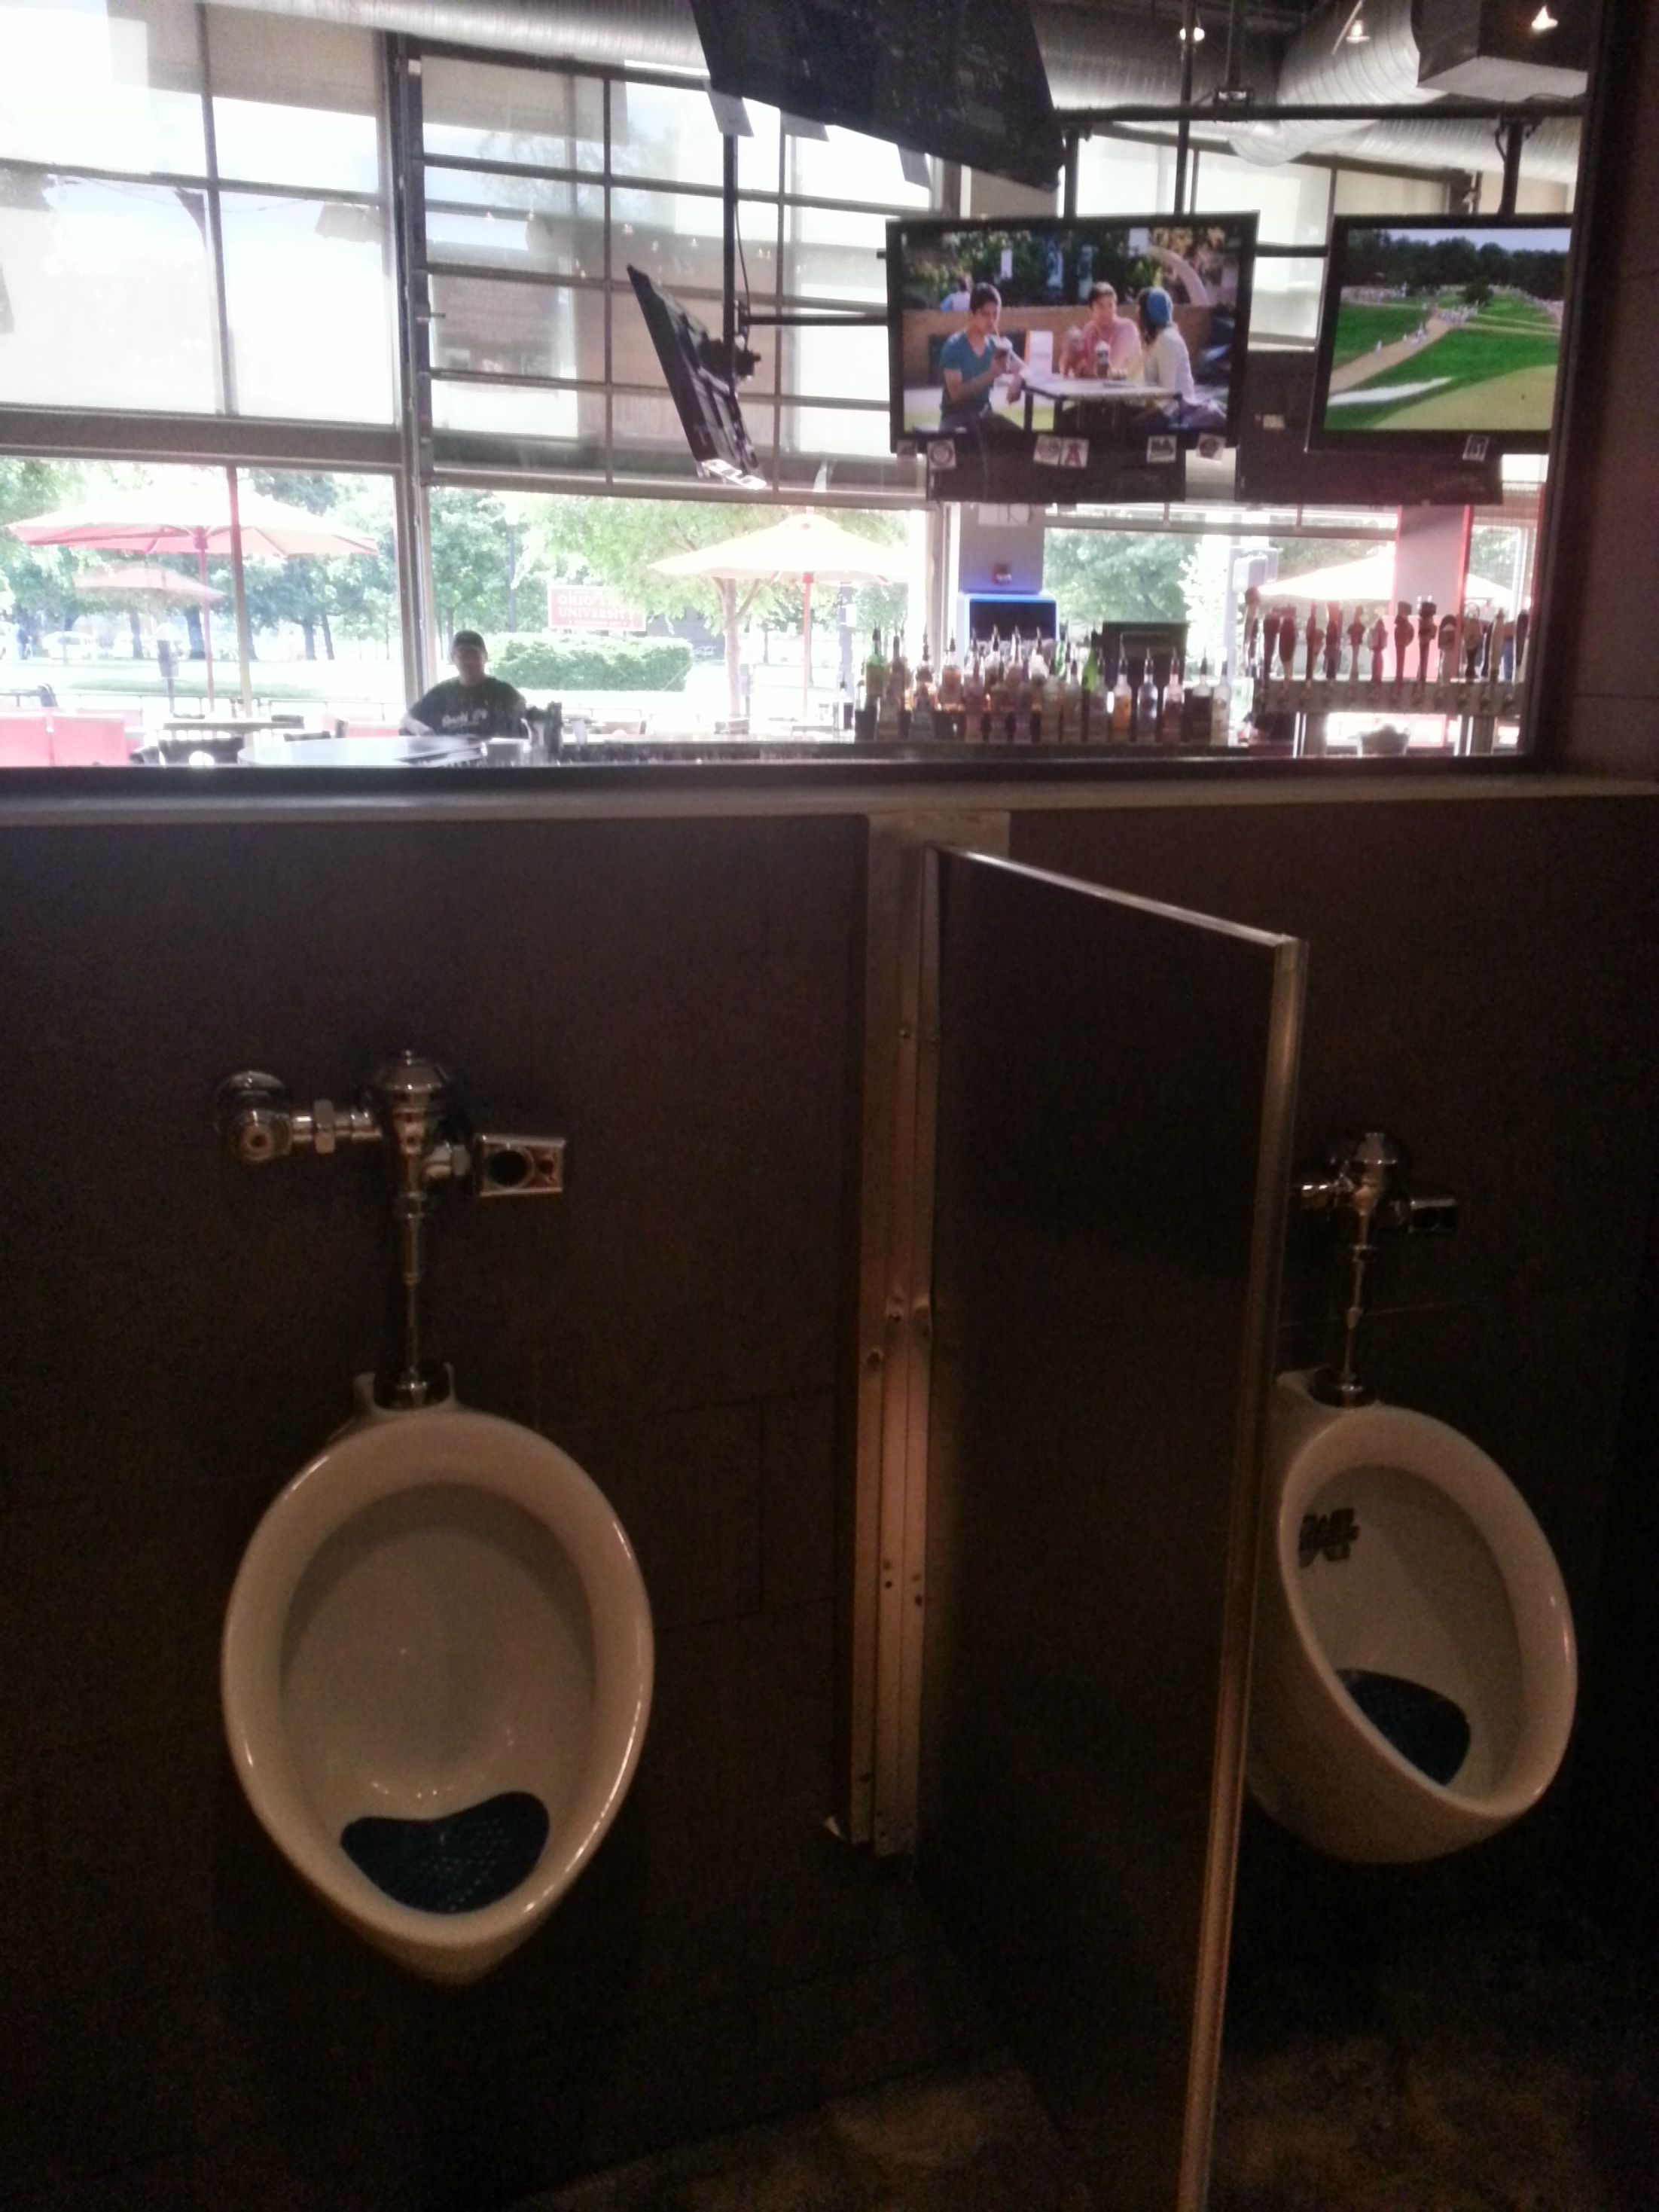 This Sports Bar Has One Way Glass In The Bathrooms So You